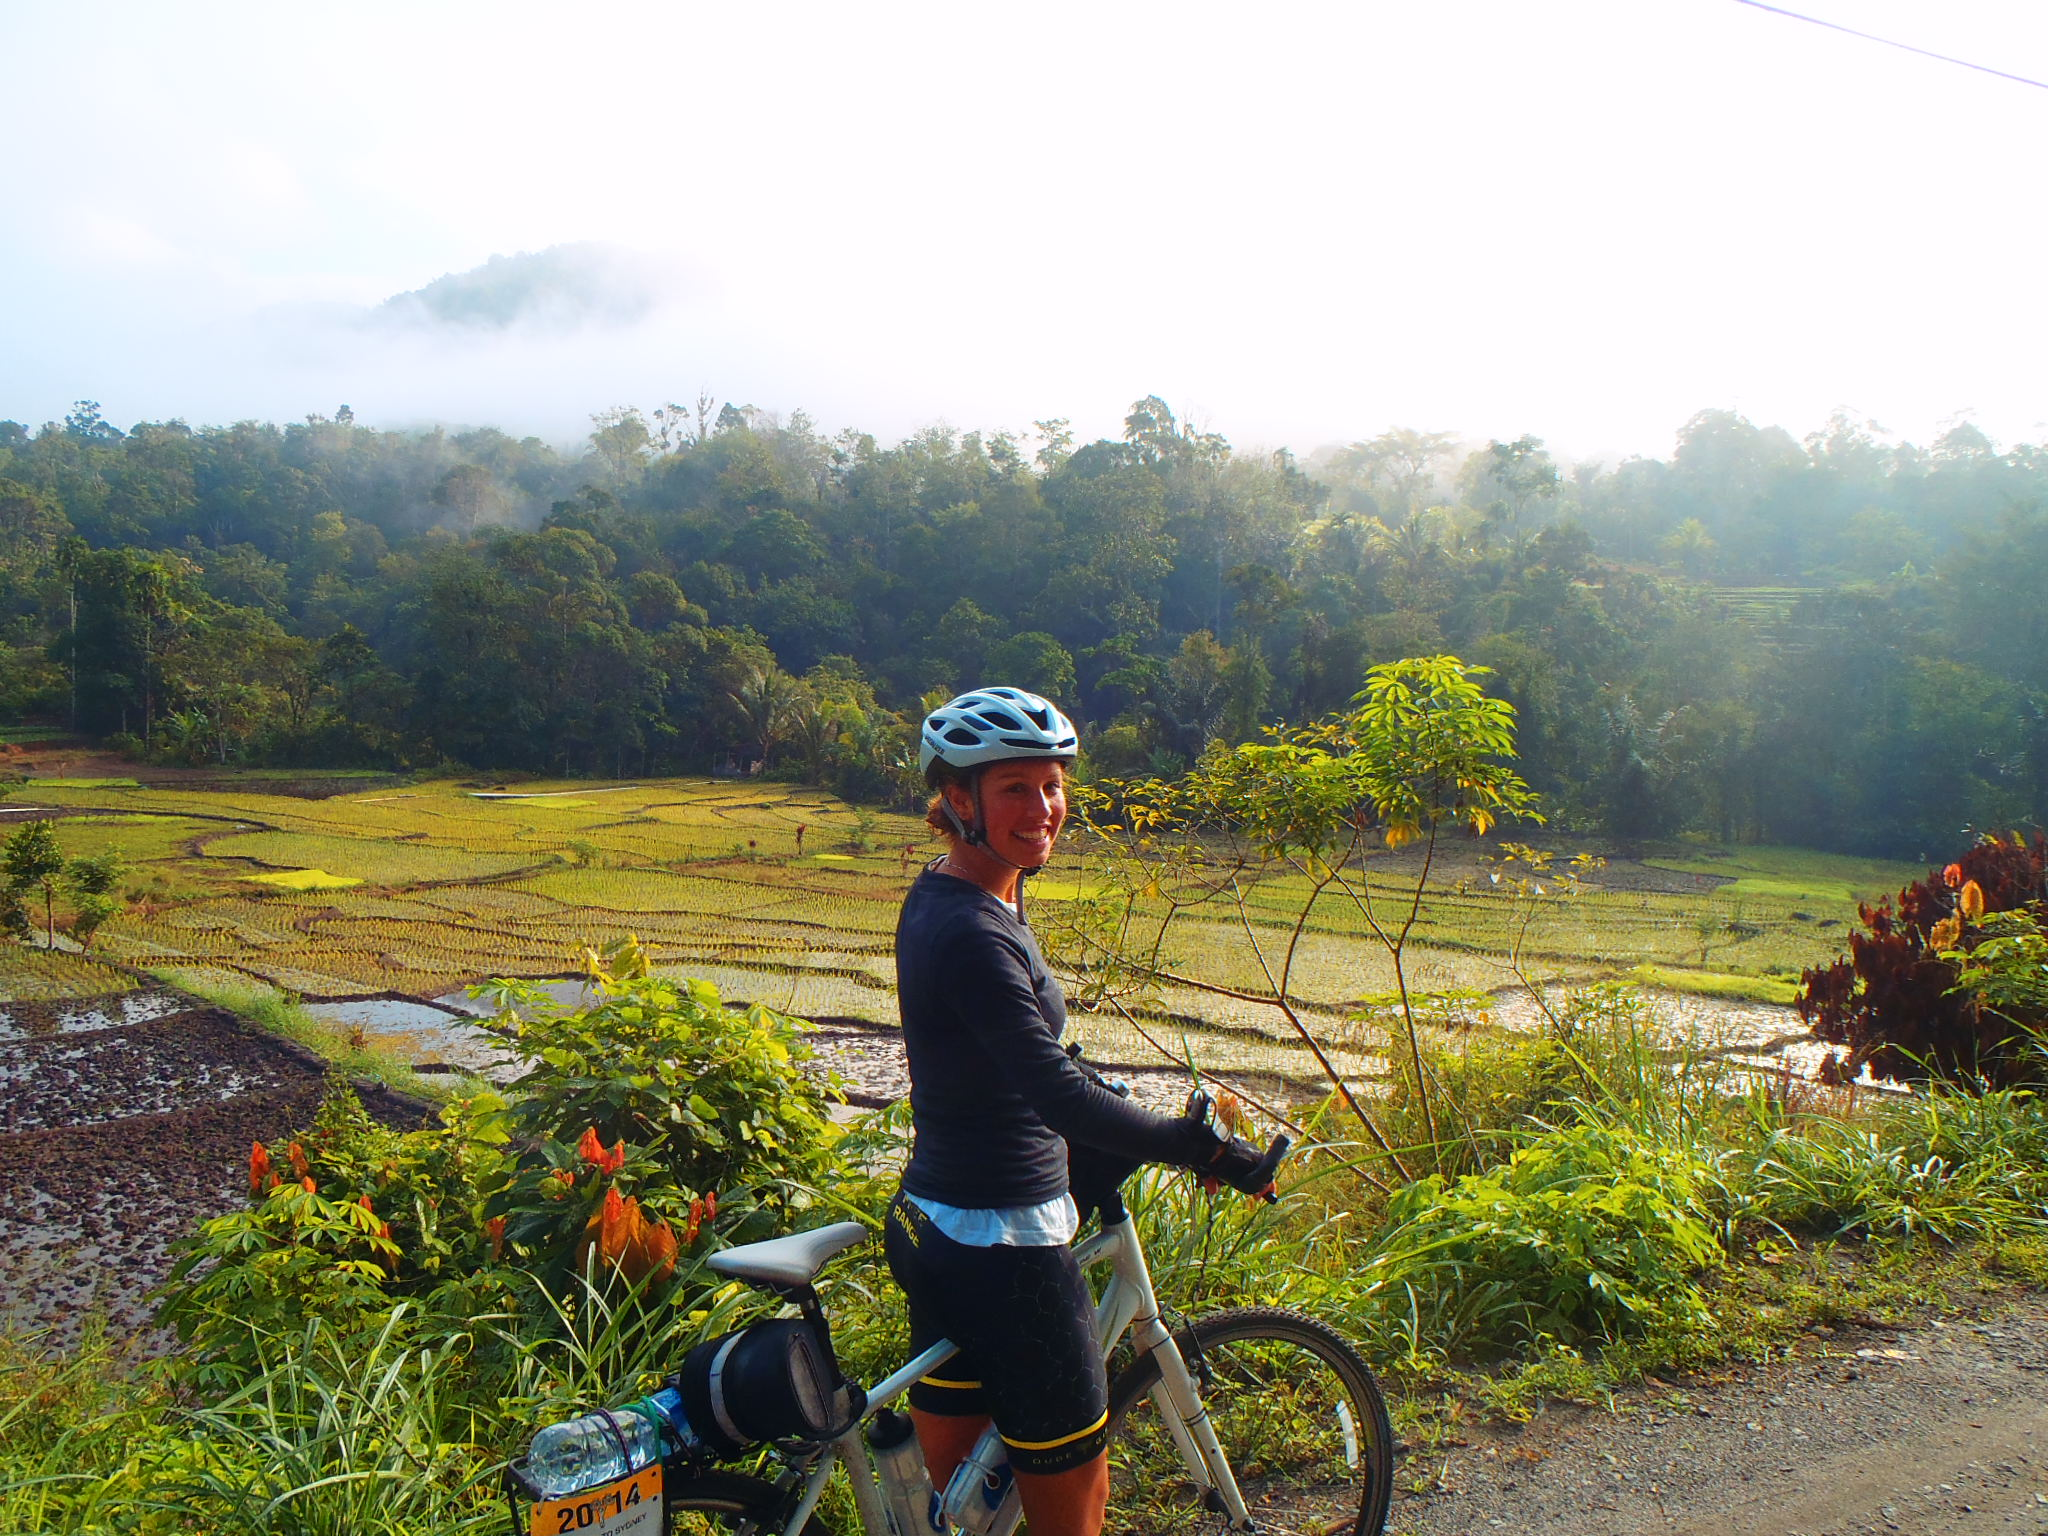 Take your bike and cycle Sumatra